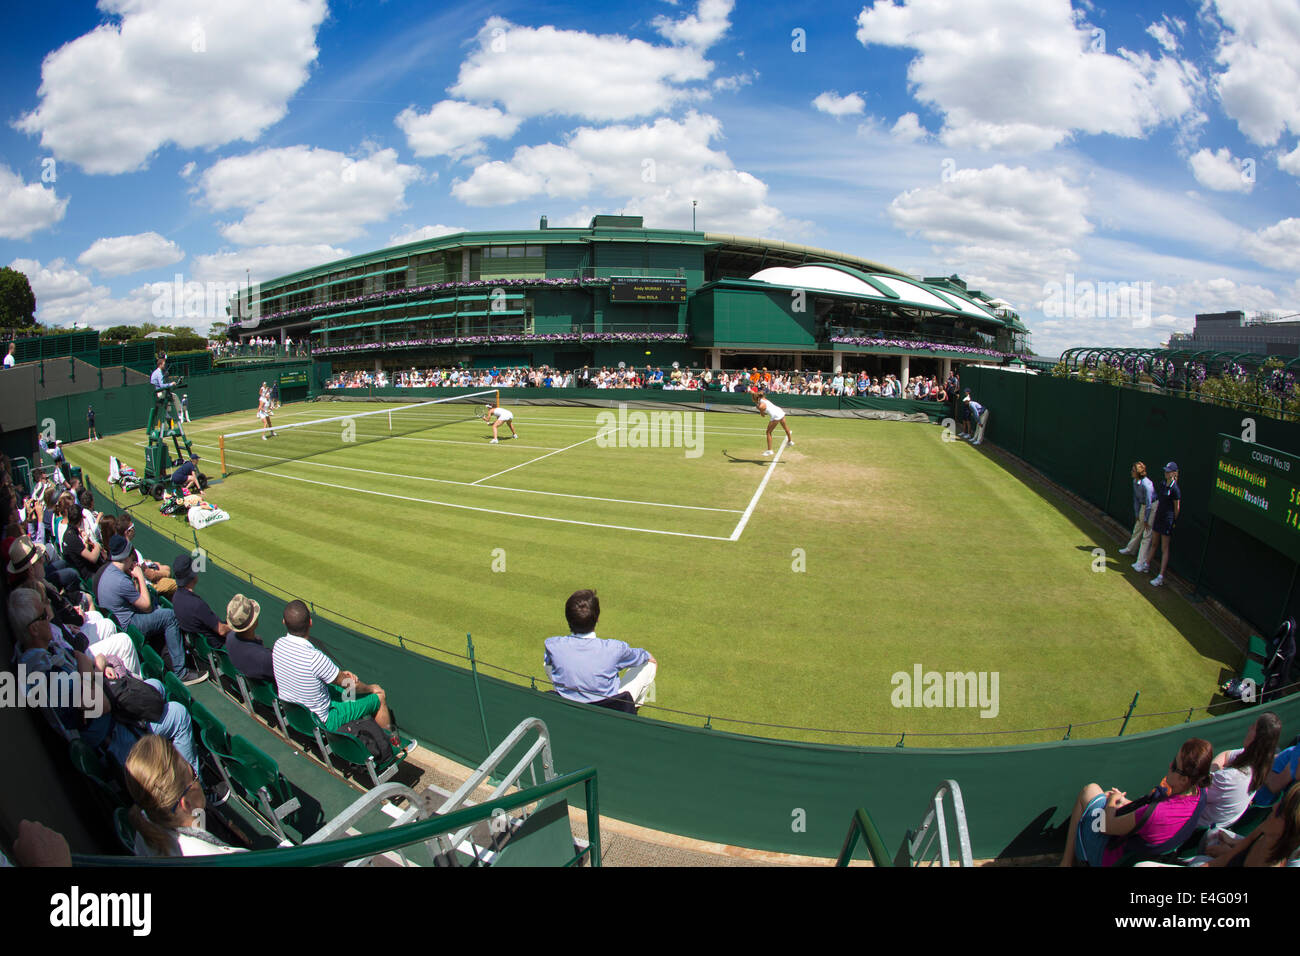 Voir Tribunal No19, tennis de Wimbledon 2014, le sud-ouest de Londres, Angleterre, Royaume-Uni Photo Stock